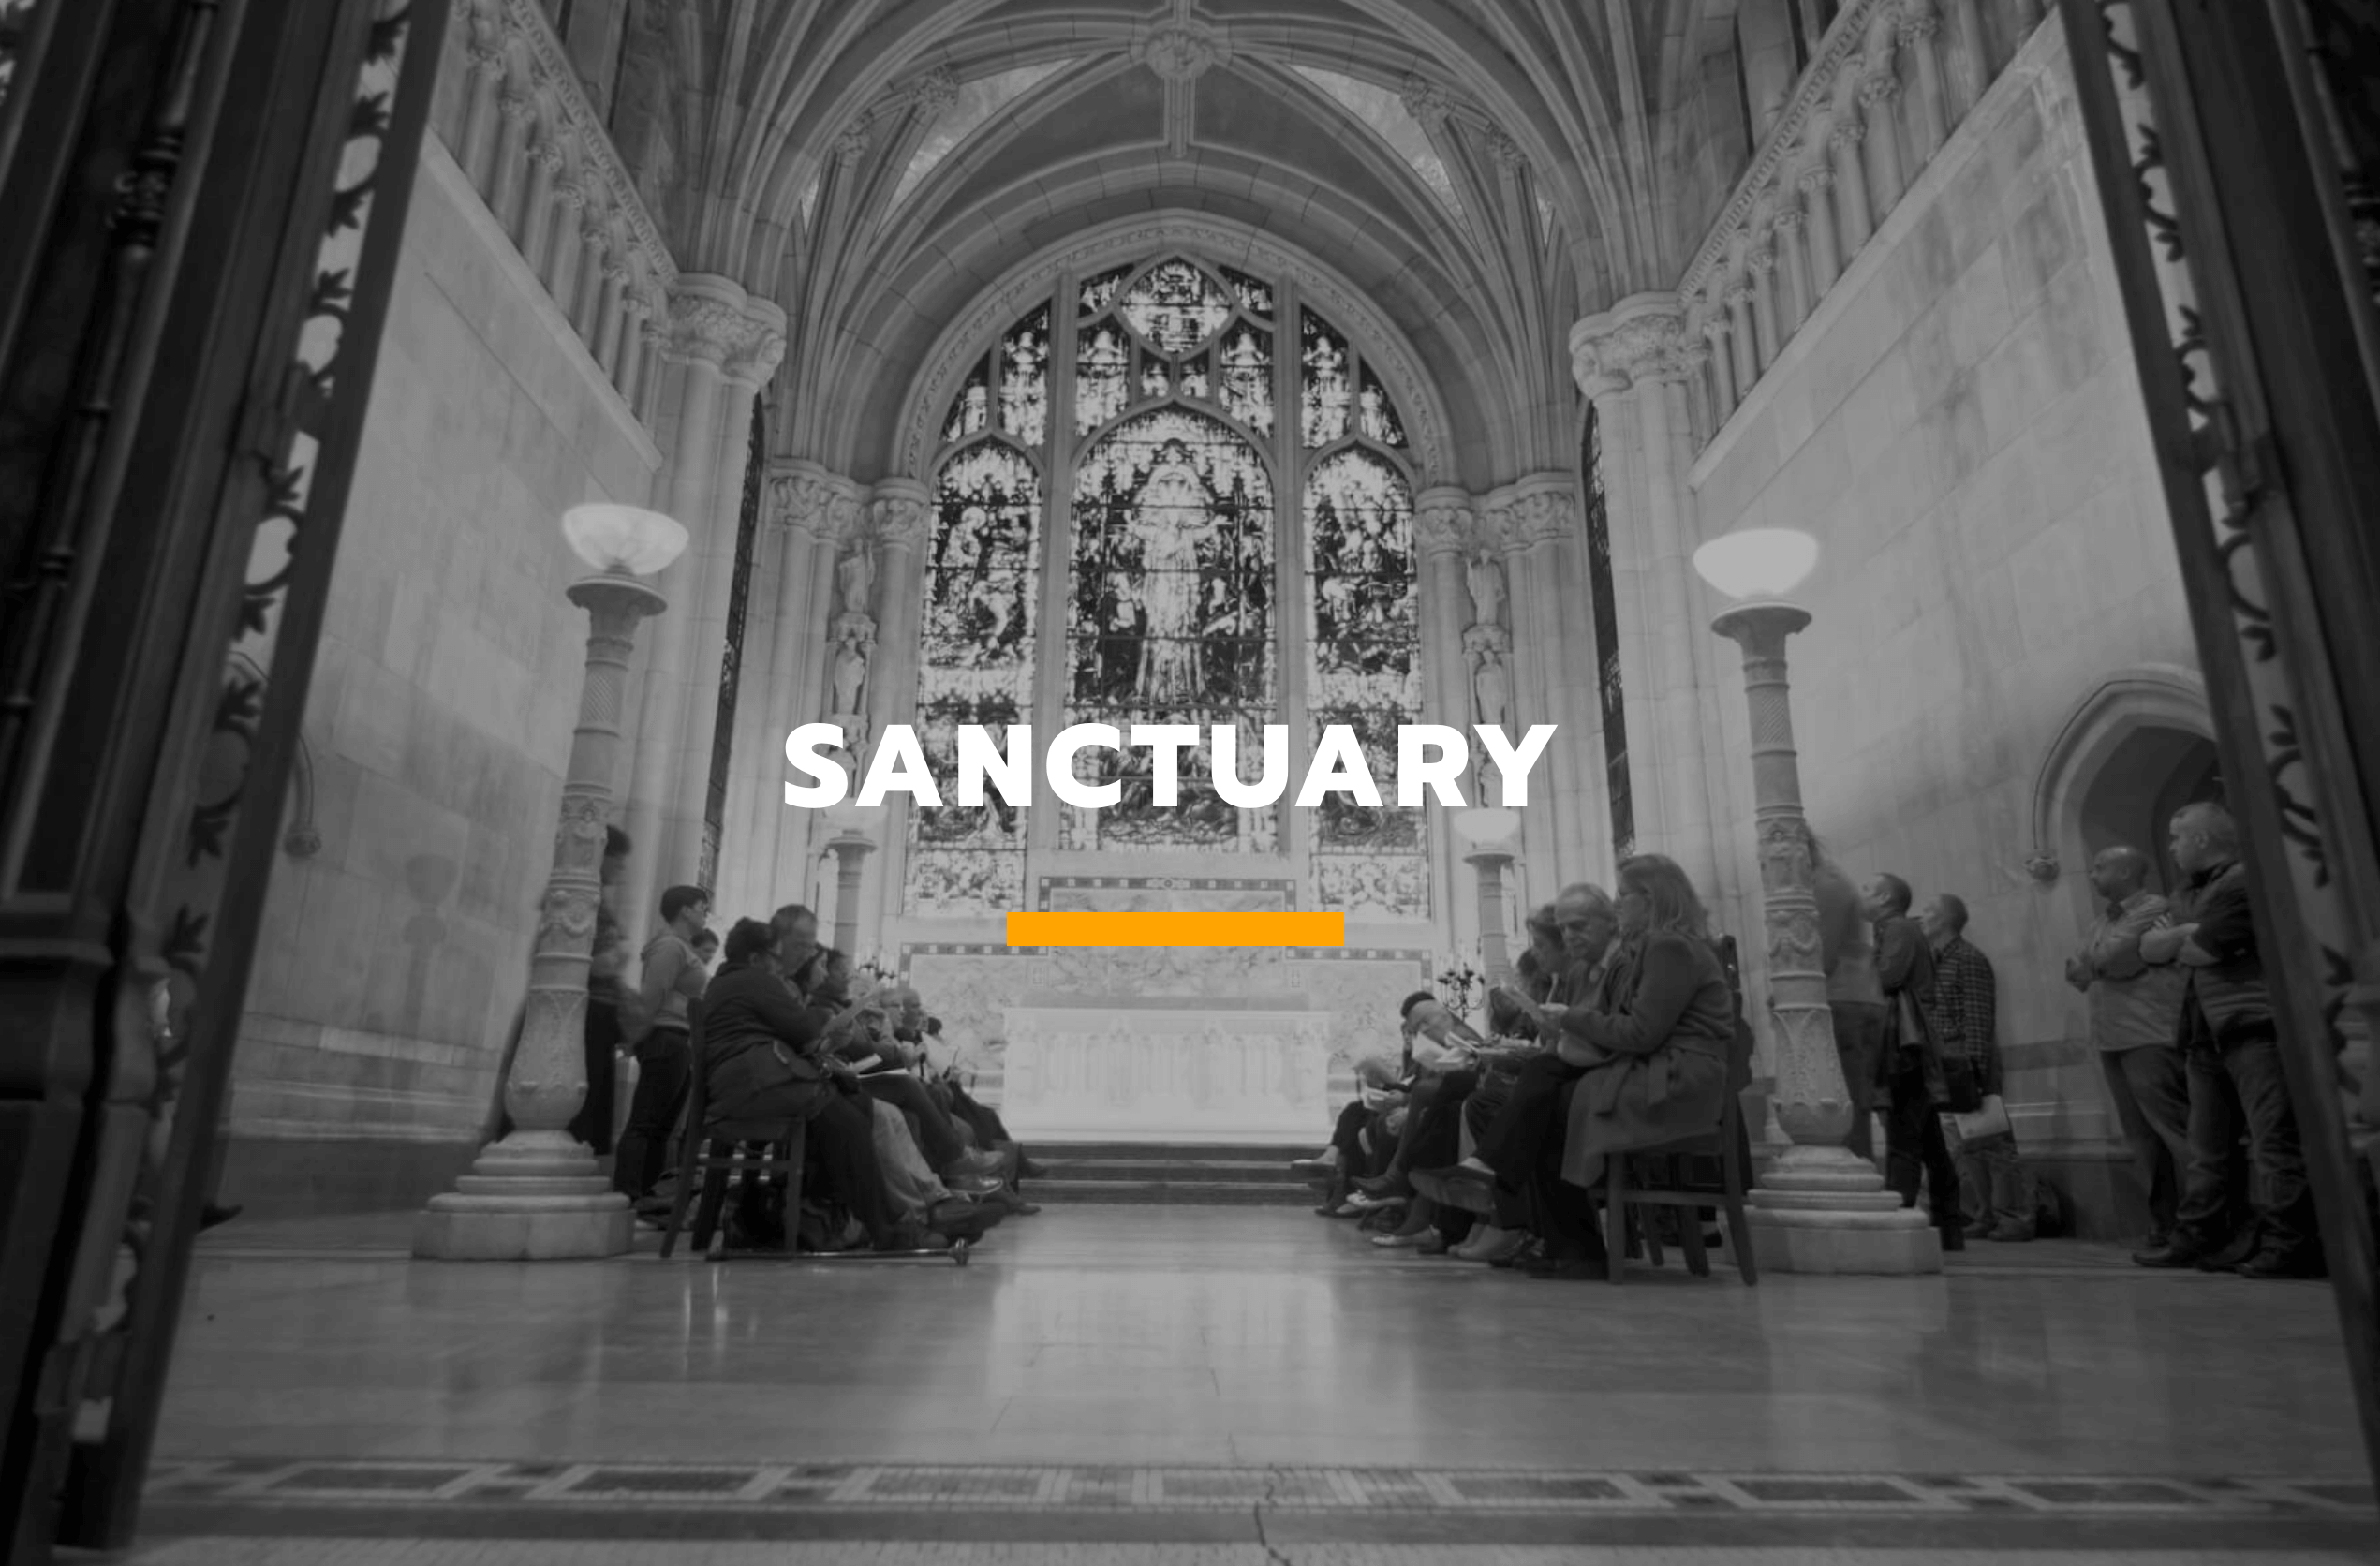 Sanctuary Five Boroughs One City